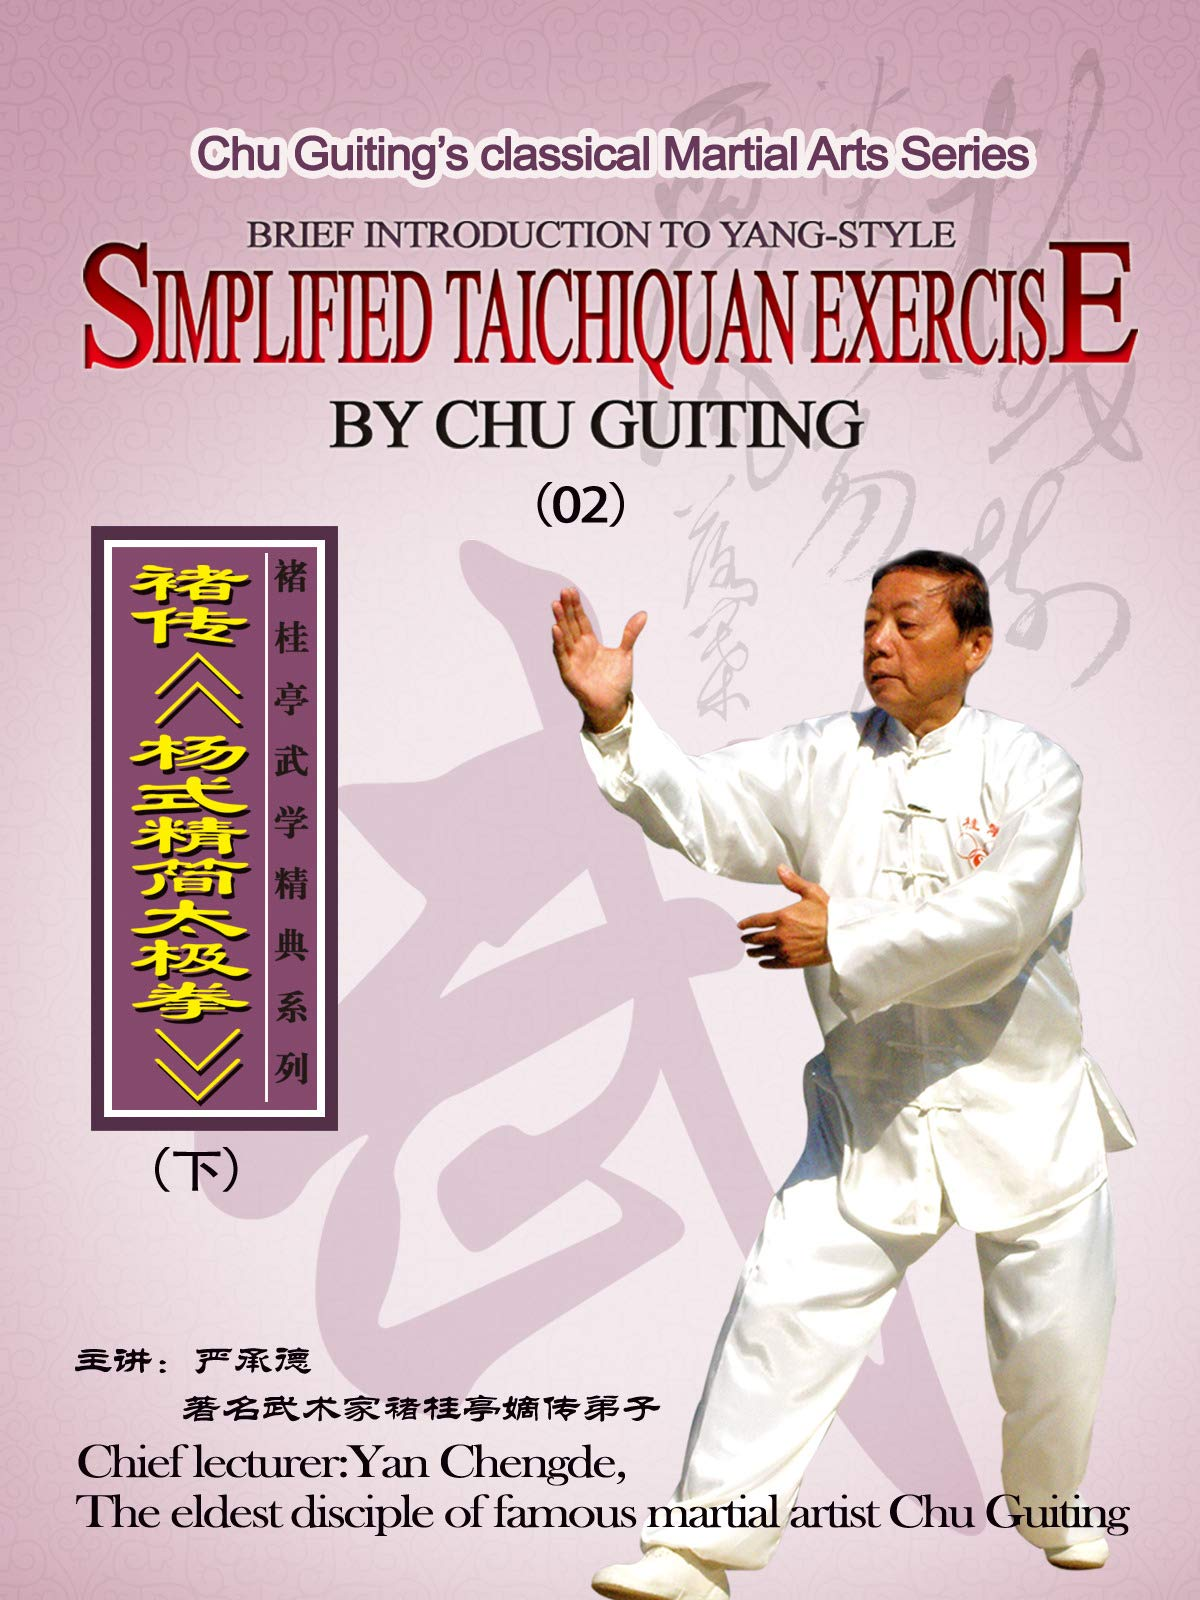 Chu Guiting's classical Martial Arts Series-Brief Introduction to Yang-style Simplified Taichiquan Exercise by Chu Guiting 02